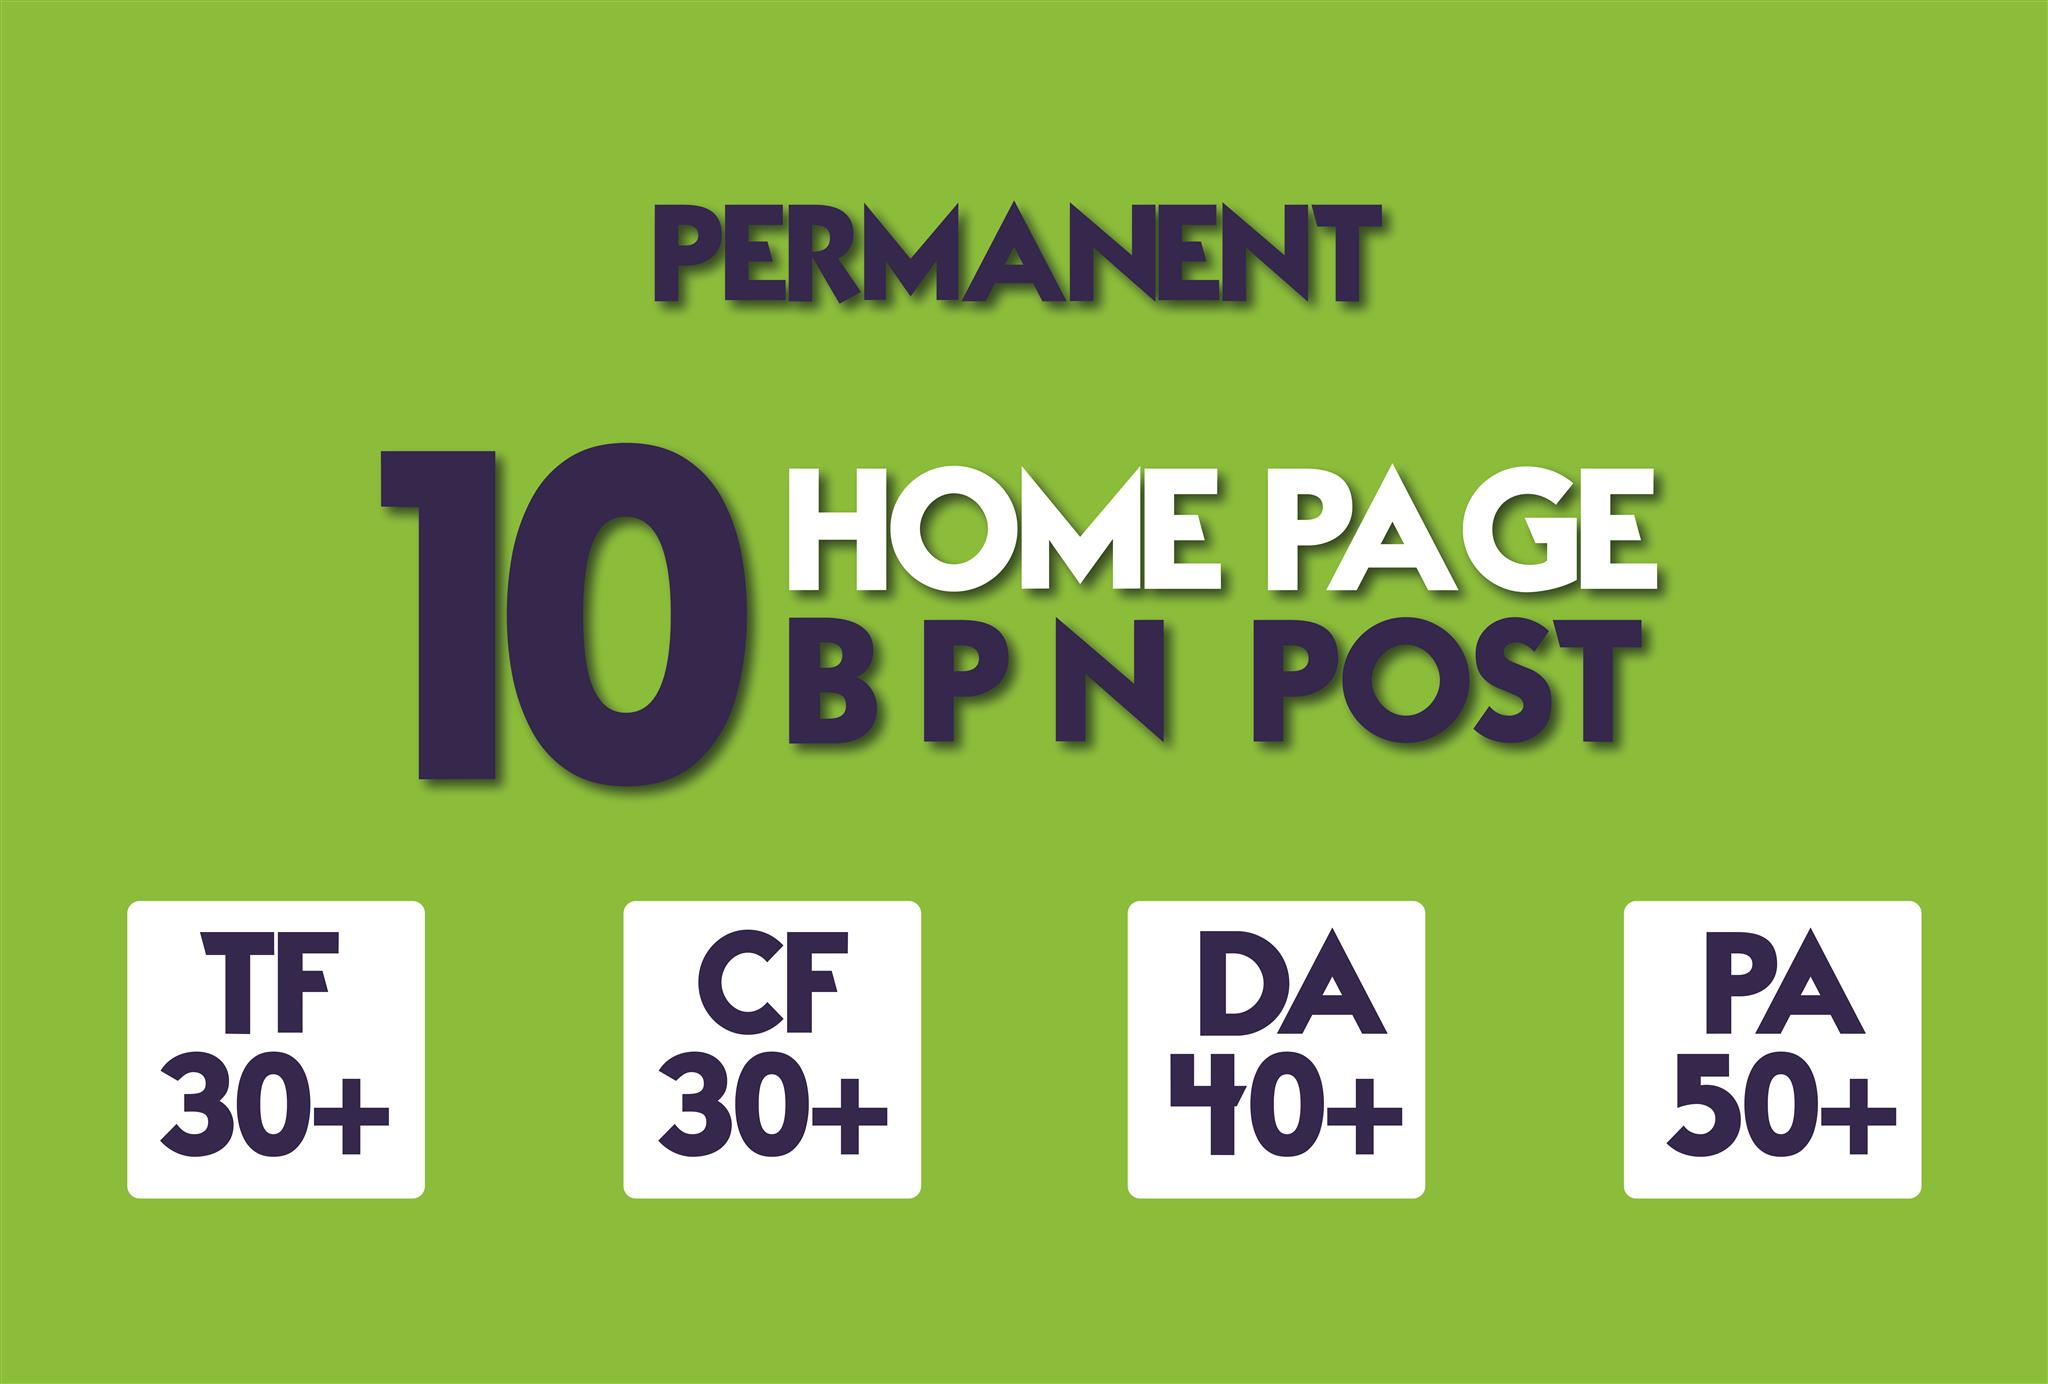 Create 10 Manual HIGH TF CF 20+ DA 15+ PA 35+ Dofollow PBN Backlinks